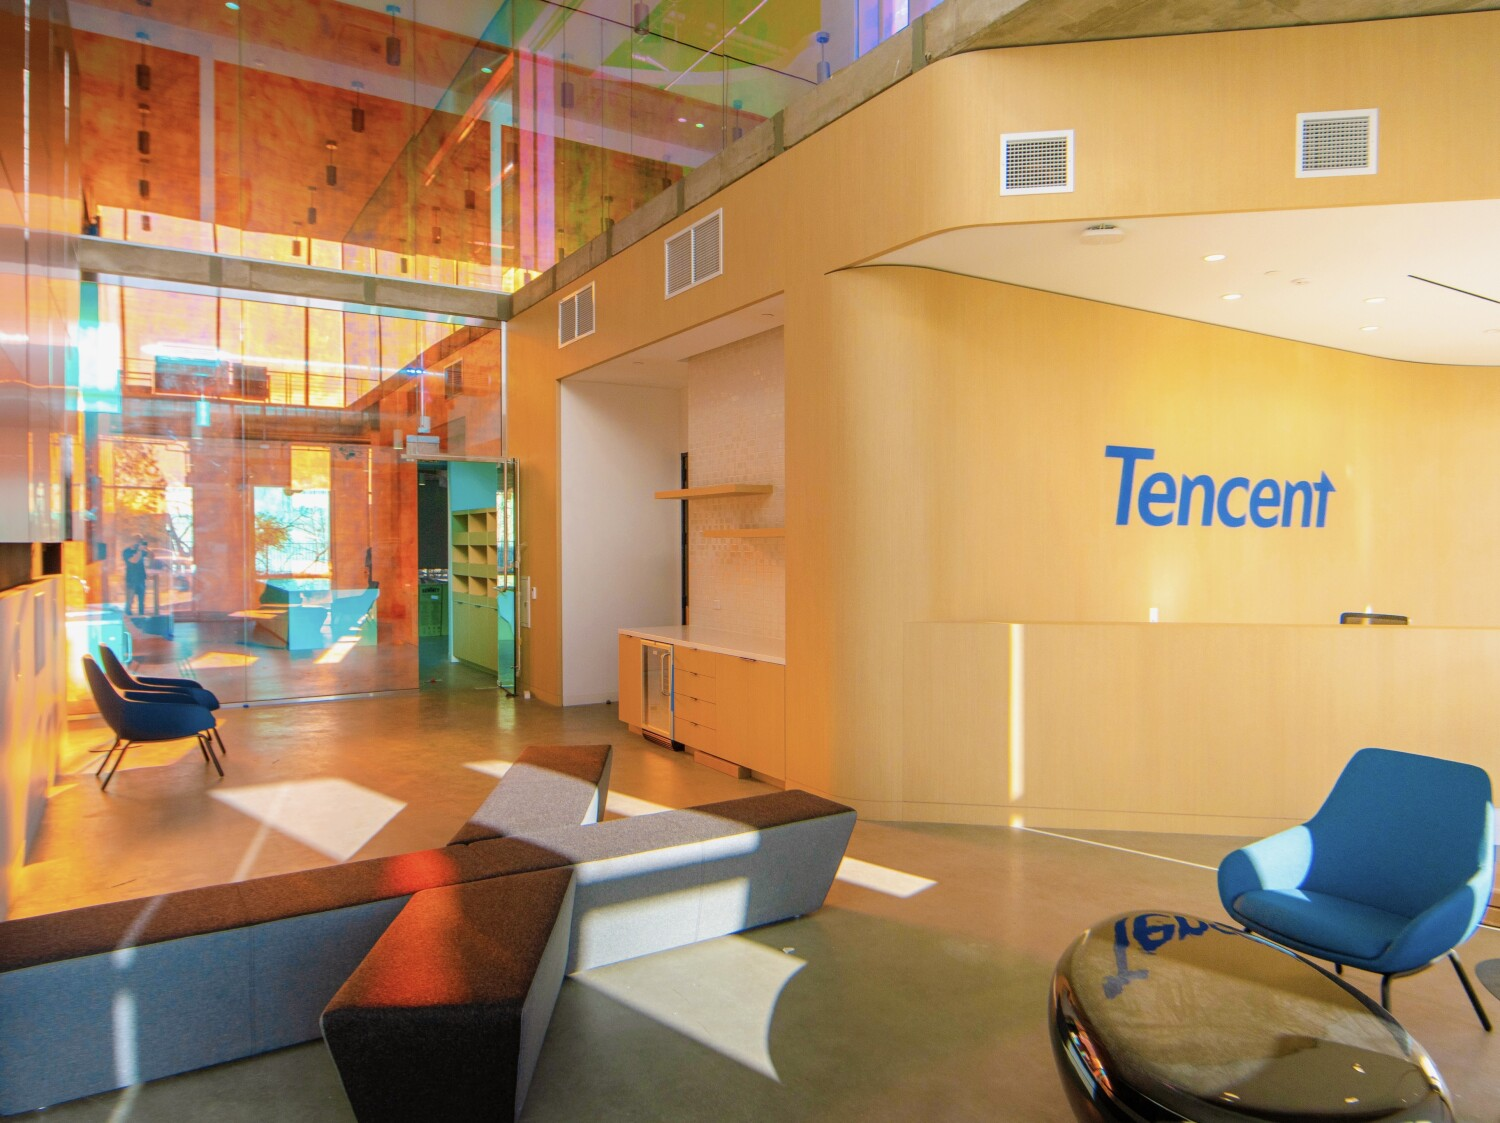 Chinese tech giant Tencent expands footprint in Playa Vista